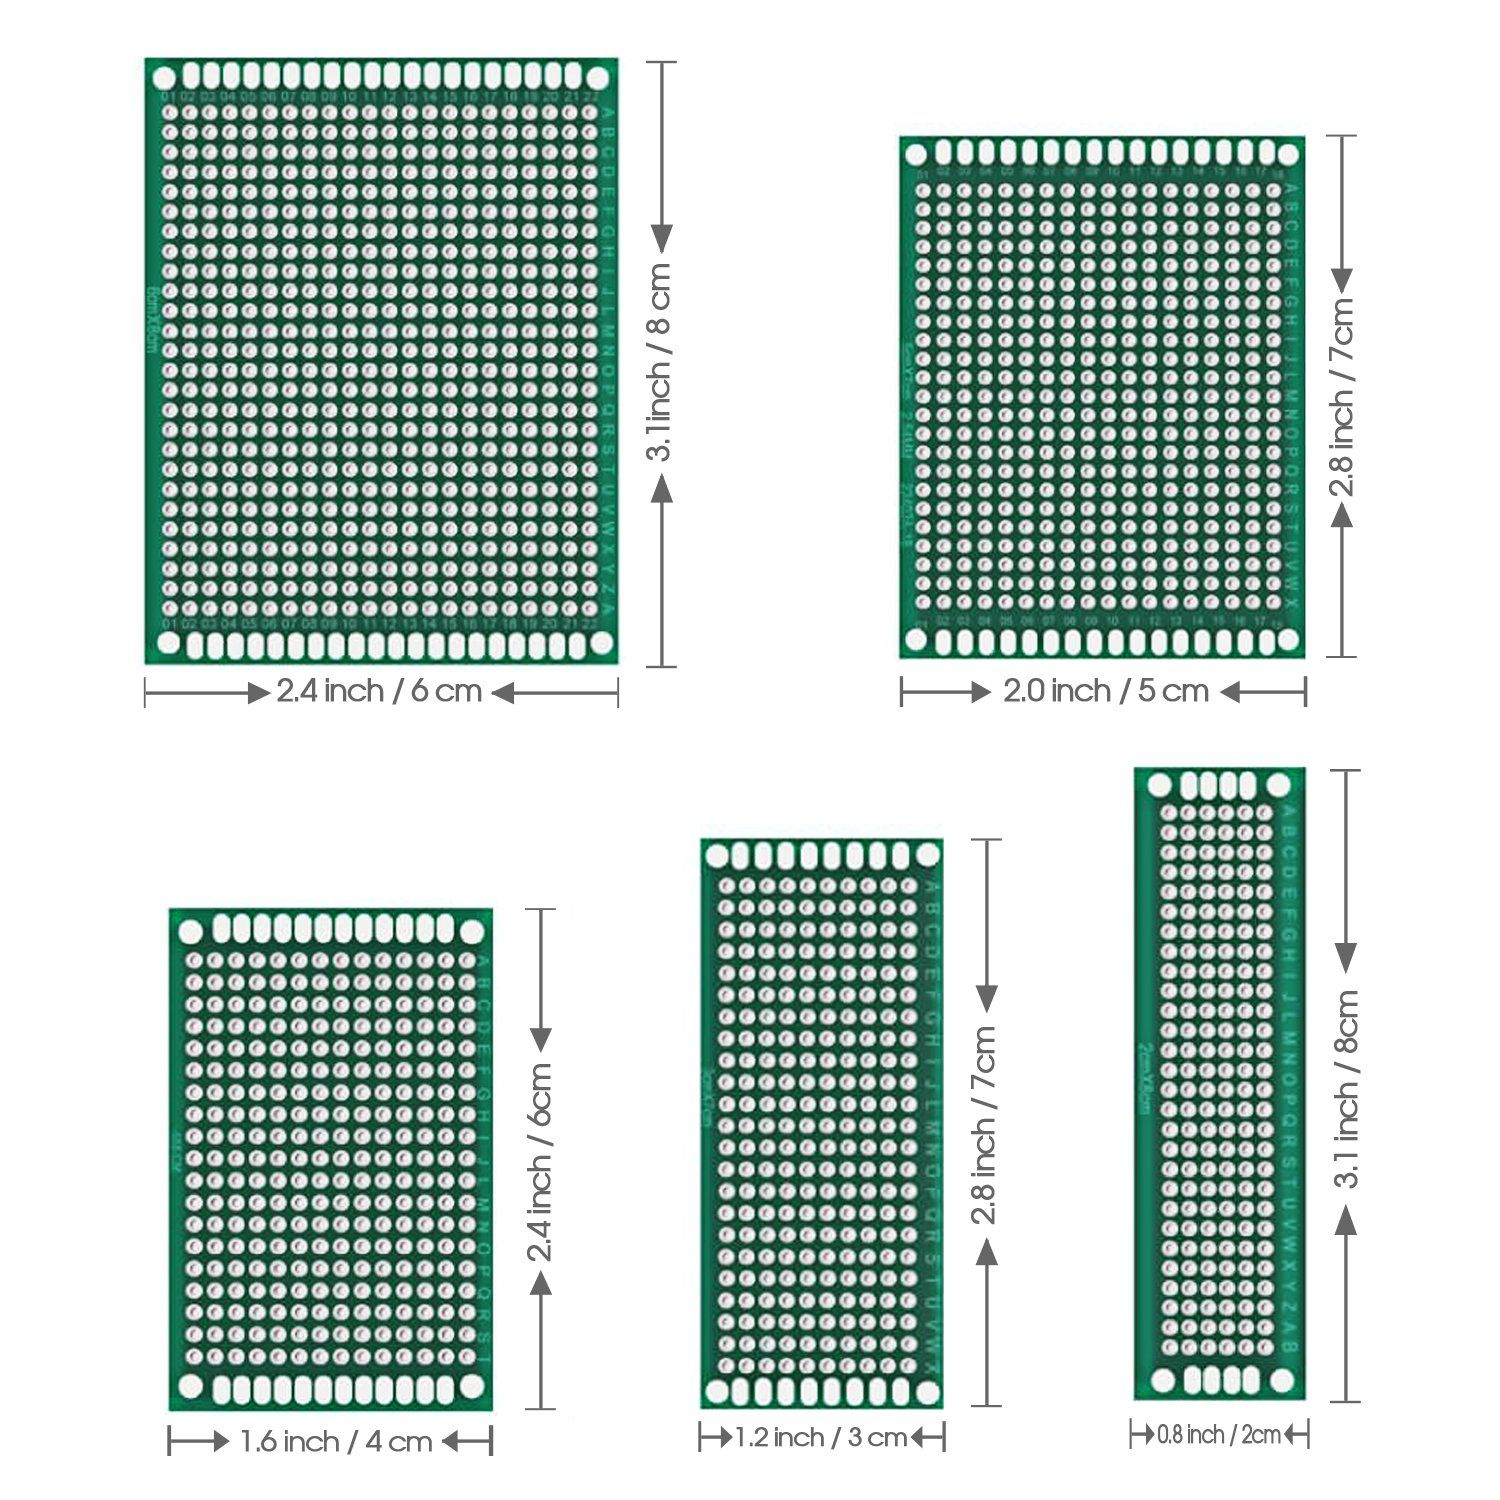 50 Pcs Double Sided Pcb Board Prototype Kit Soldering 5 Sizes Universal Printed Circuit Board For Diy And Printed Circuit Board Pcb Board Electronics Projects